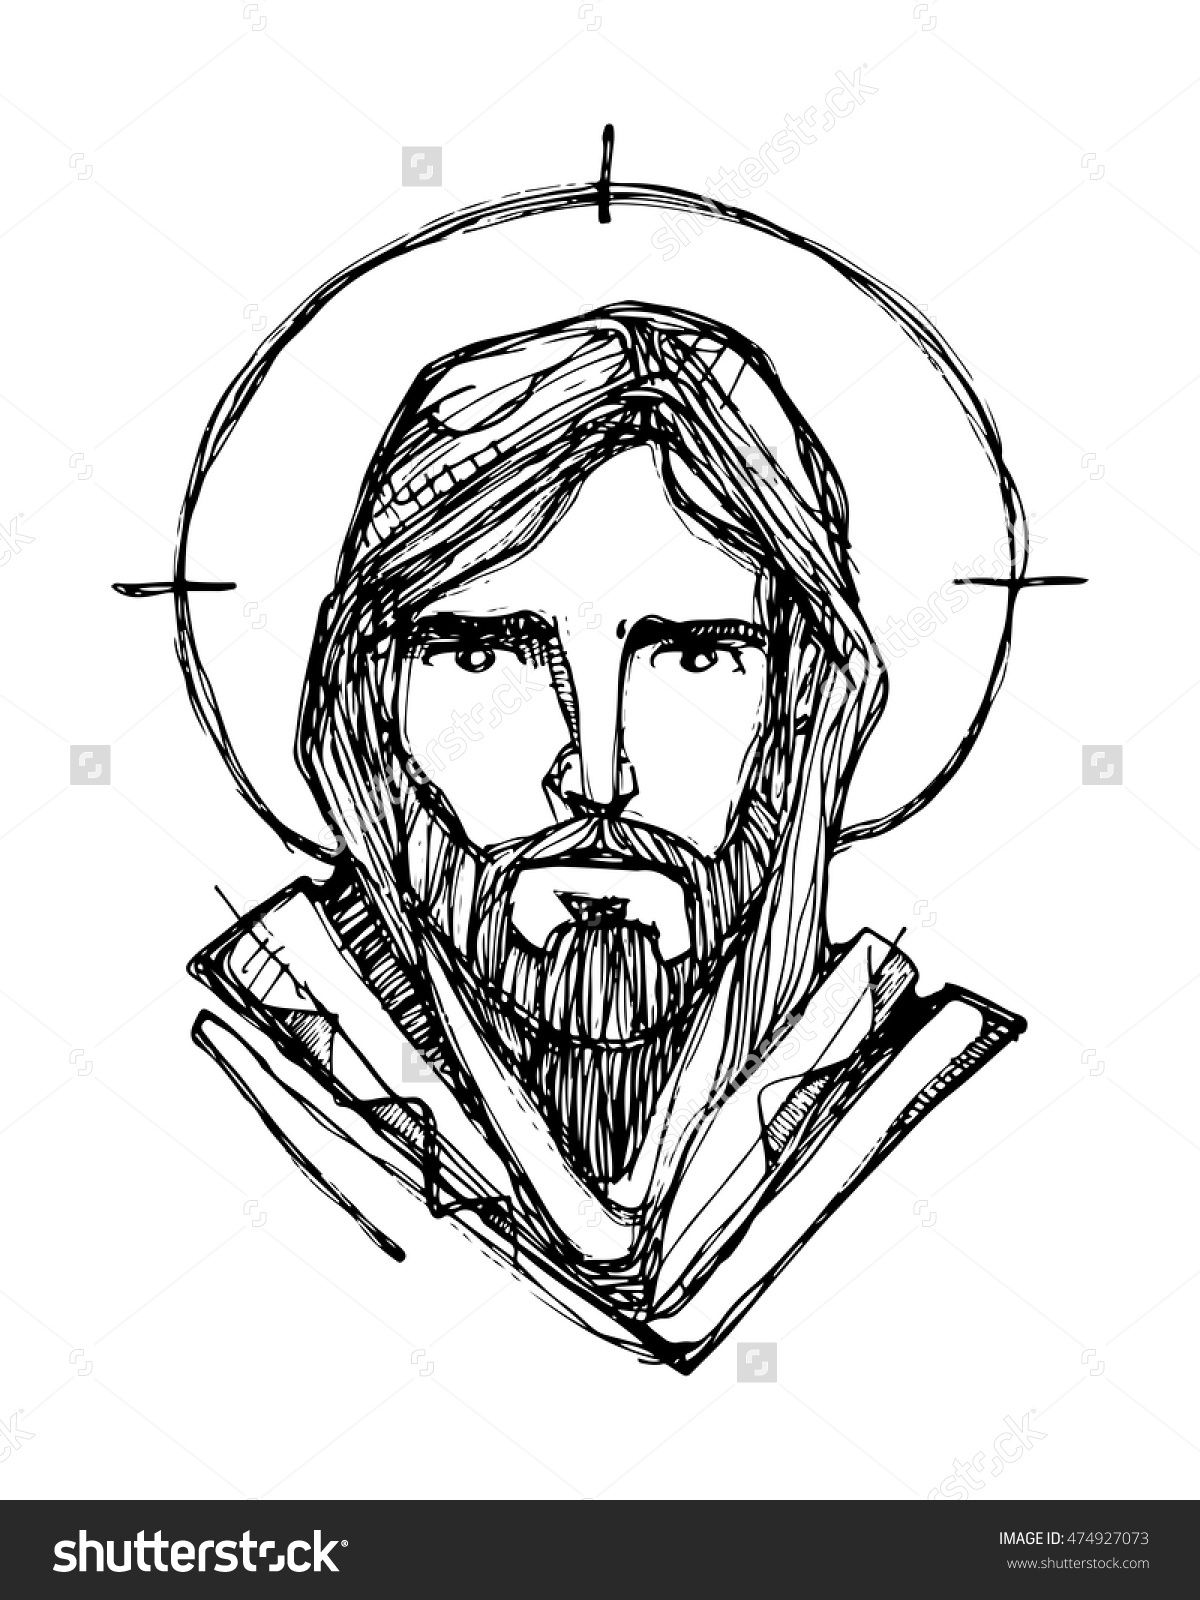 Hand drawn vector illustration or drawing of jesus christ face 474927073 shutterstock